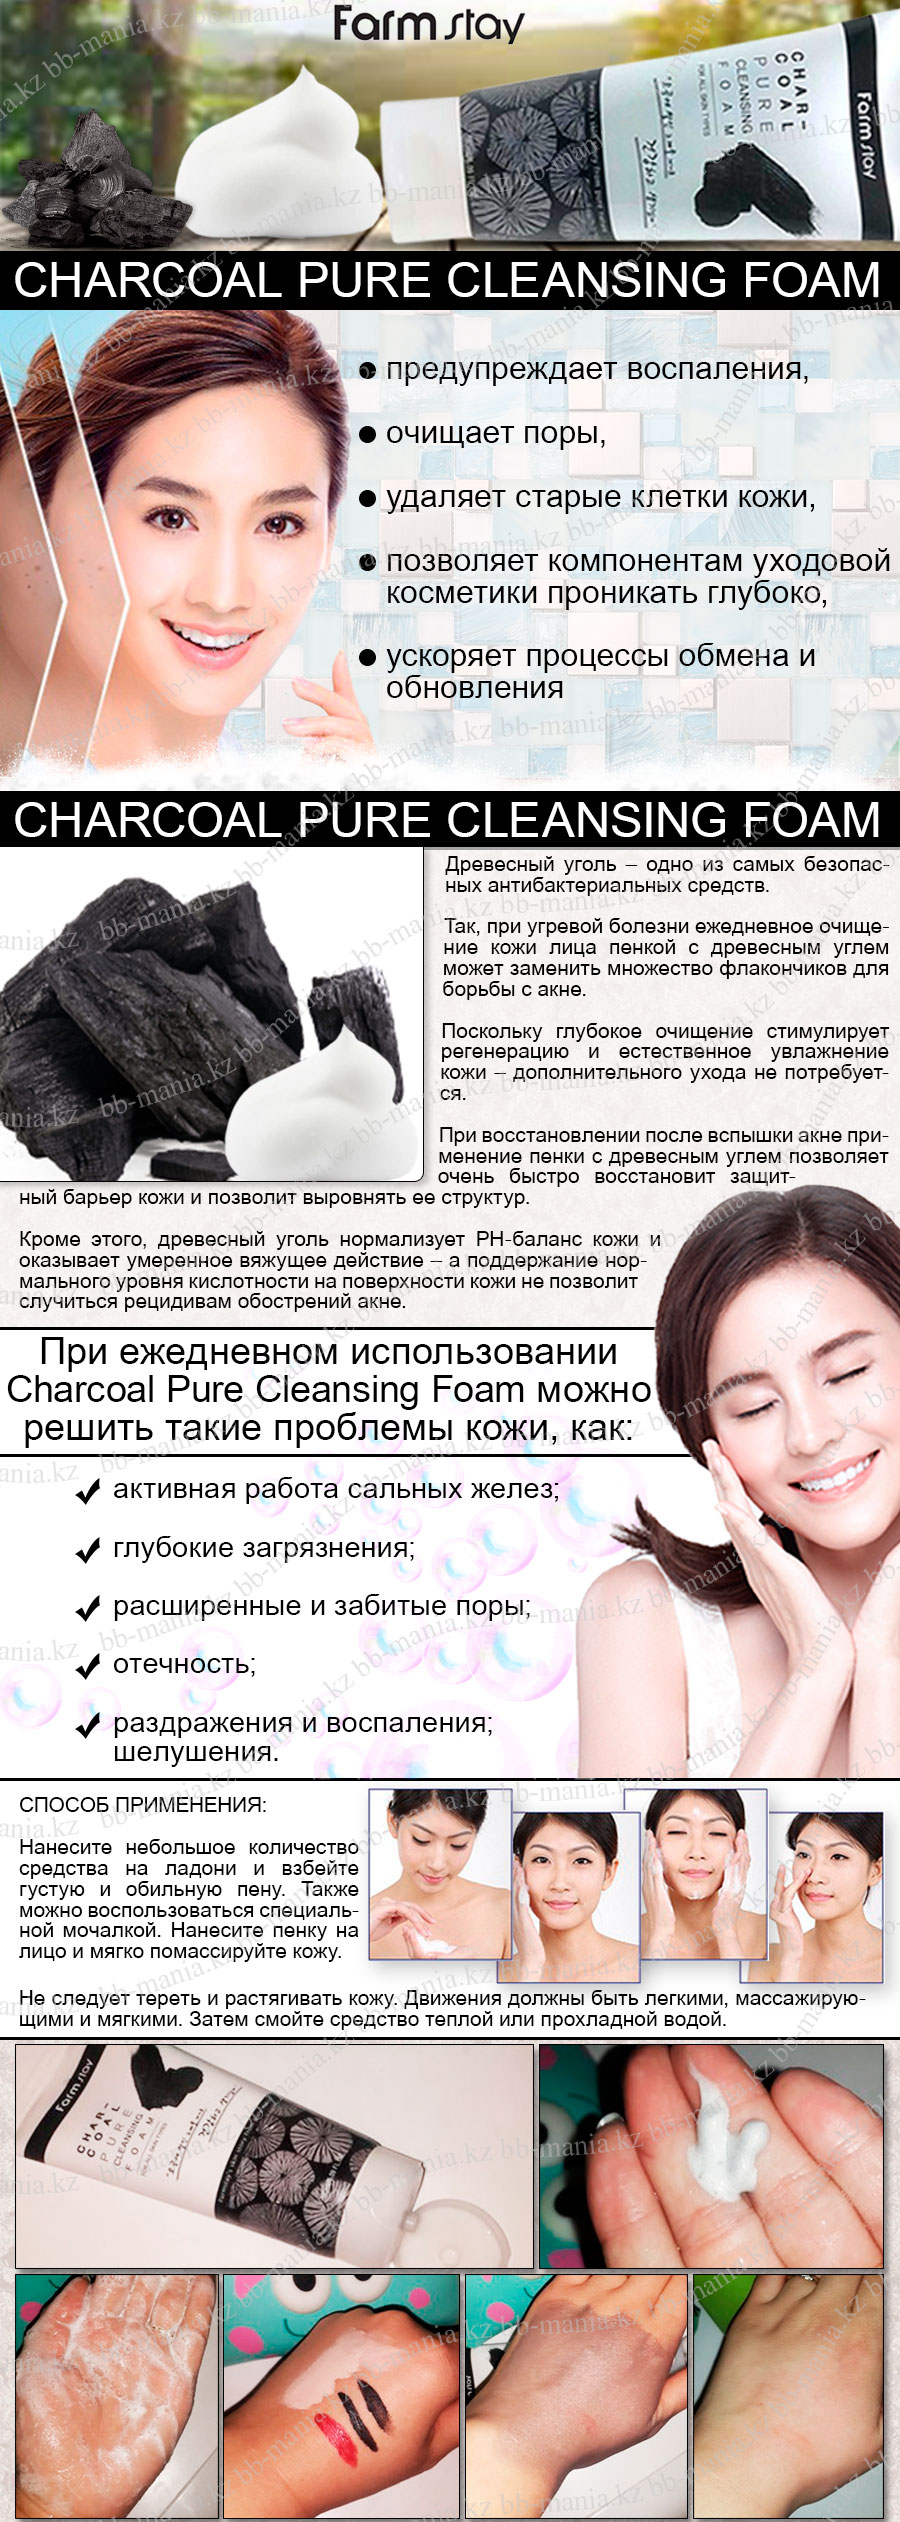 Charcoal-Pure-Cleansing-Foam-[FarmStay]-min